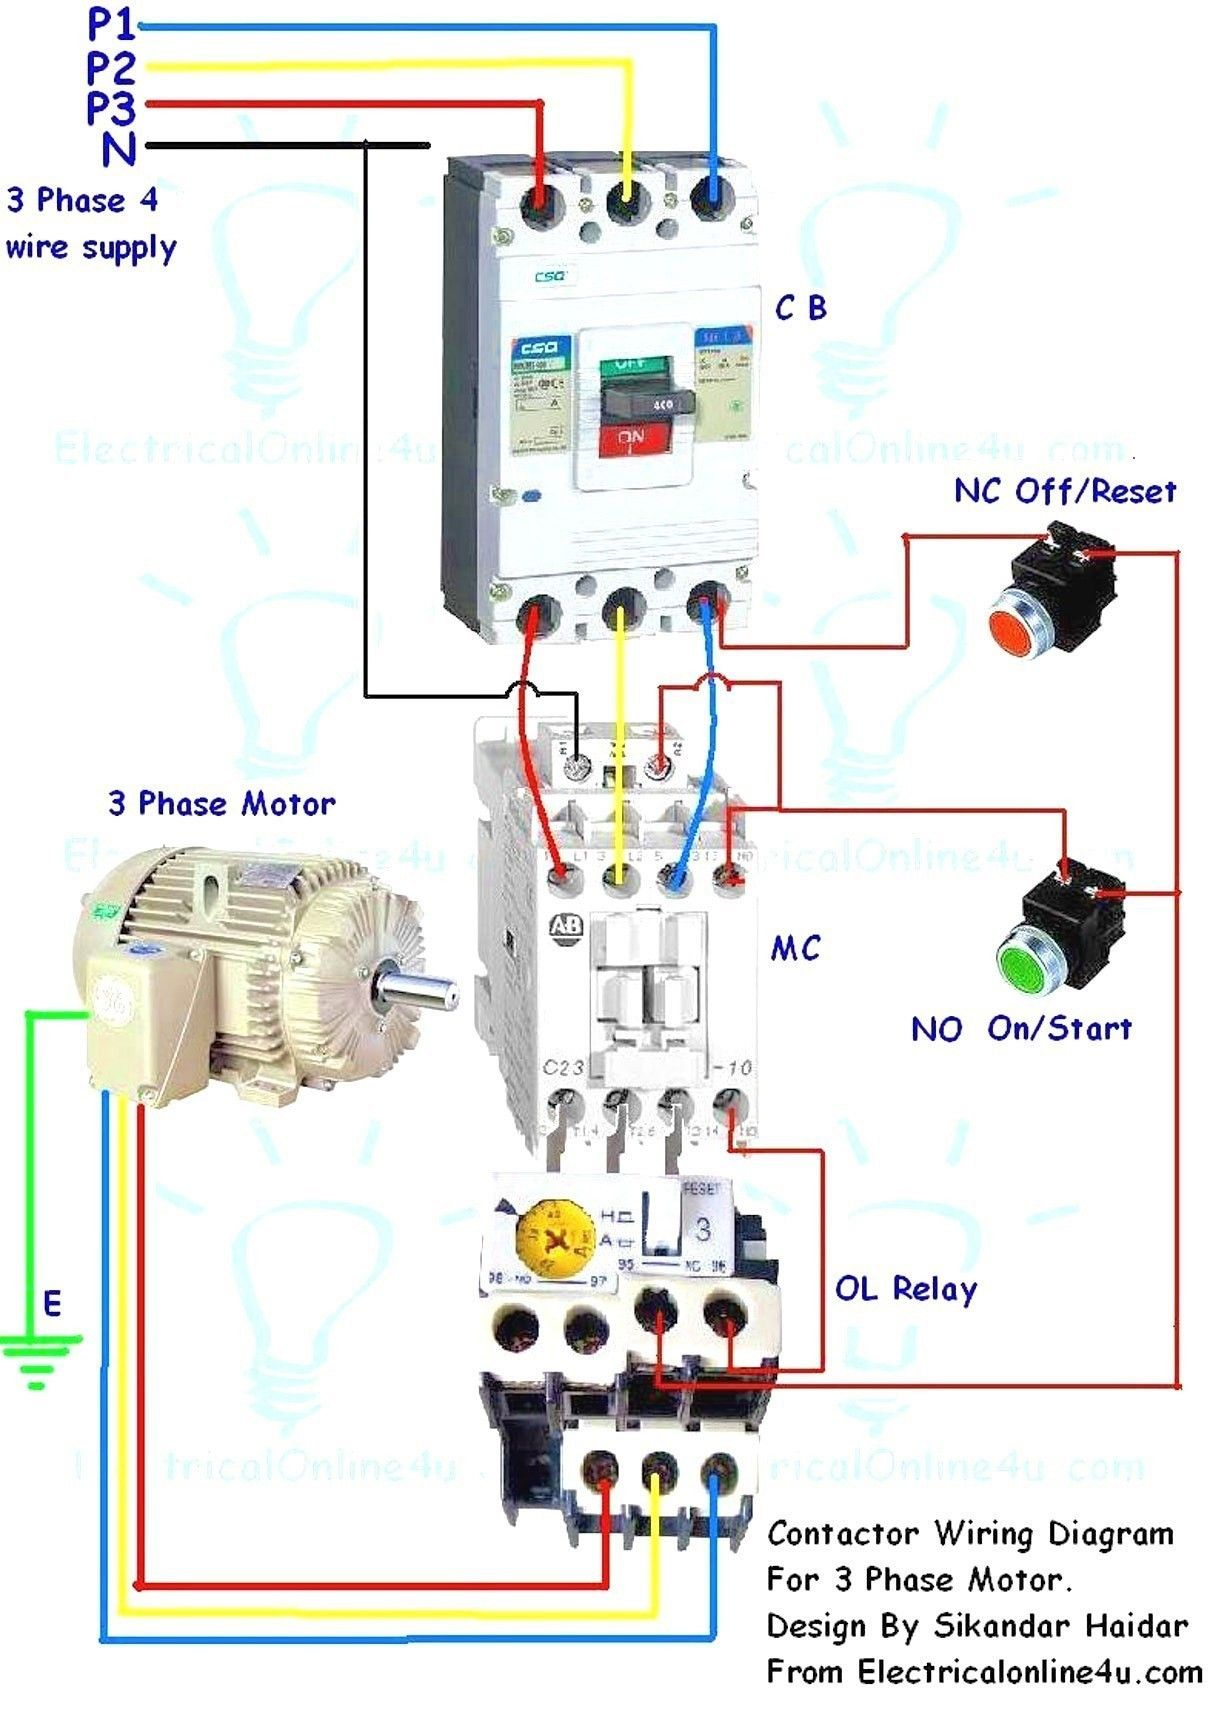 small resolution of 240 volt contactor wiring diagram free download wiring diagram view 3 phase wire wiring diagram free